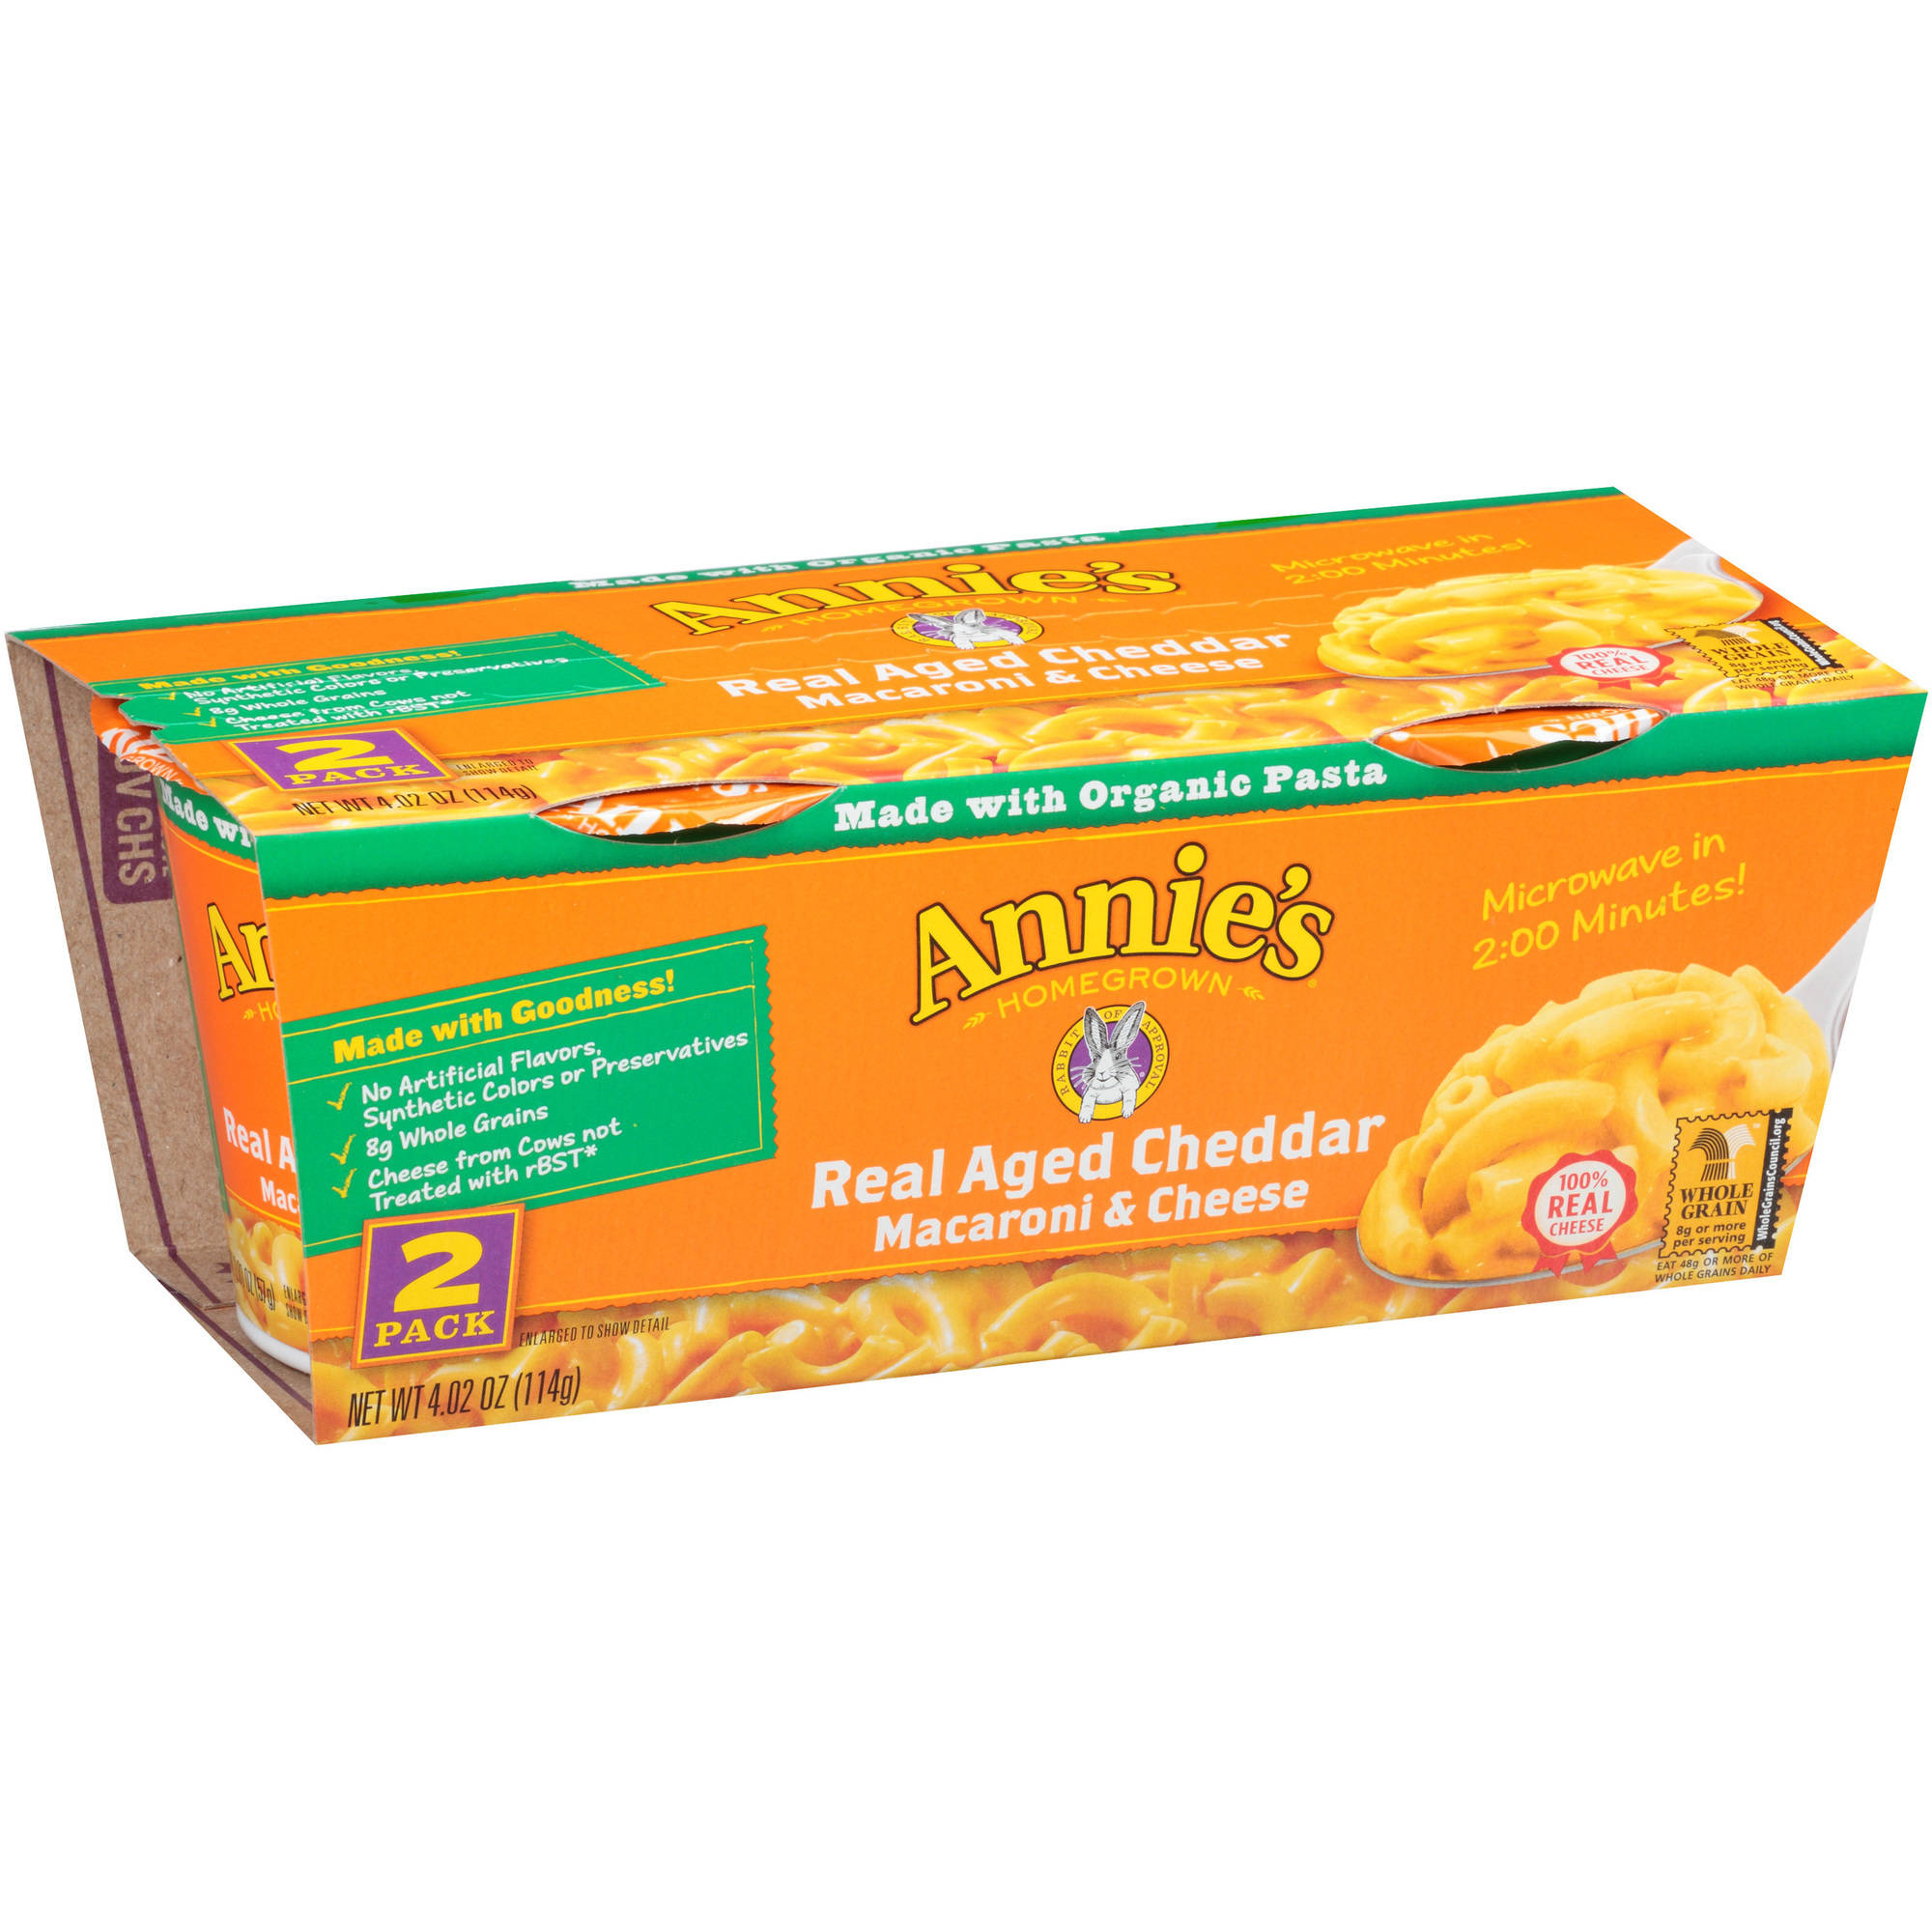 Annie's Real Aged Cheddar Macaroni & Cheese Microcups, 2.01 oz, 2 count